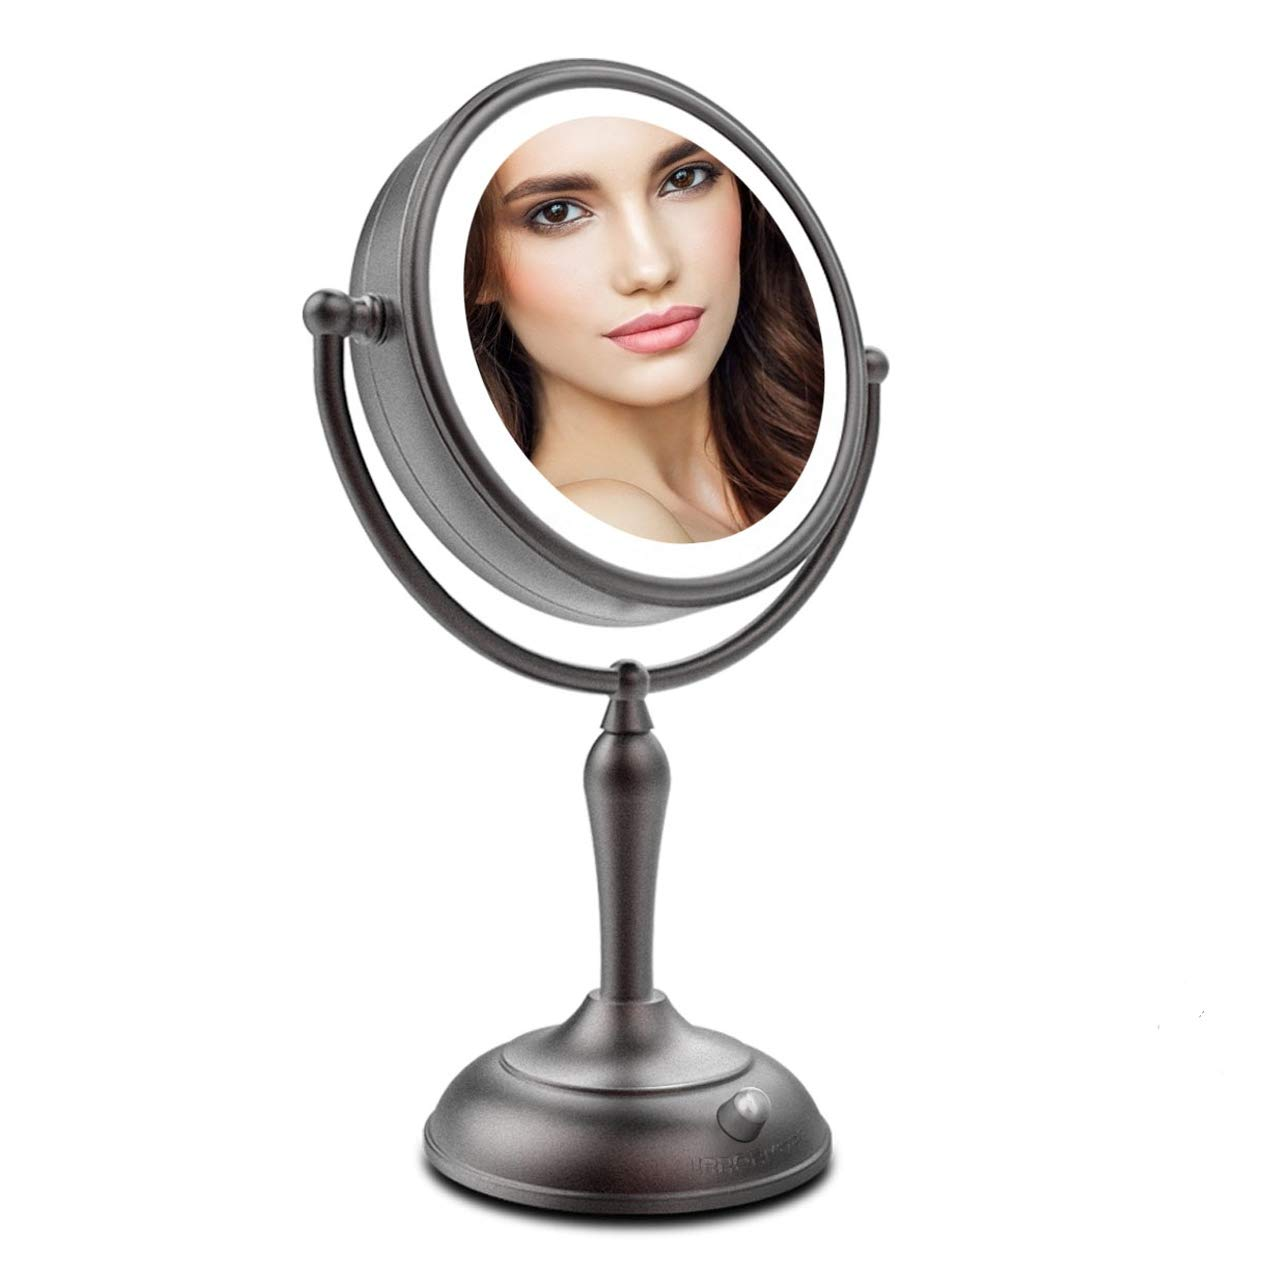 MIRRORMORE LED Makeup Mirror Magnifying